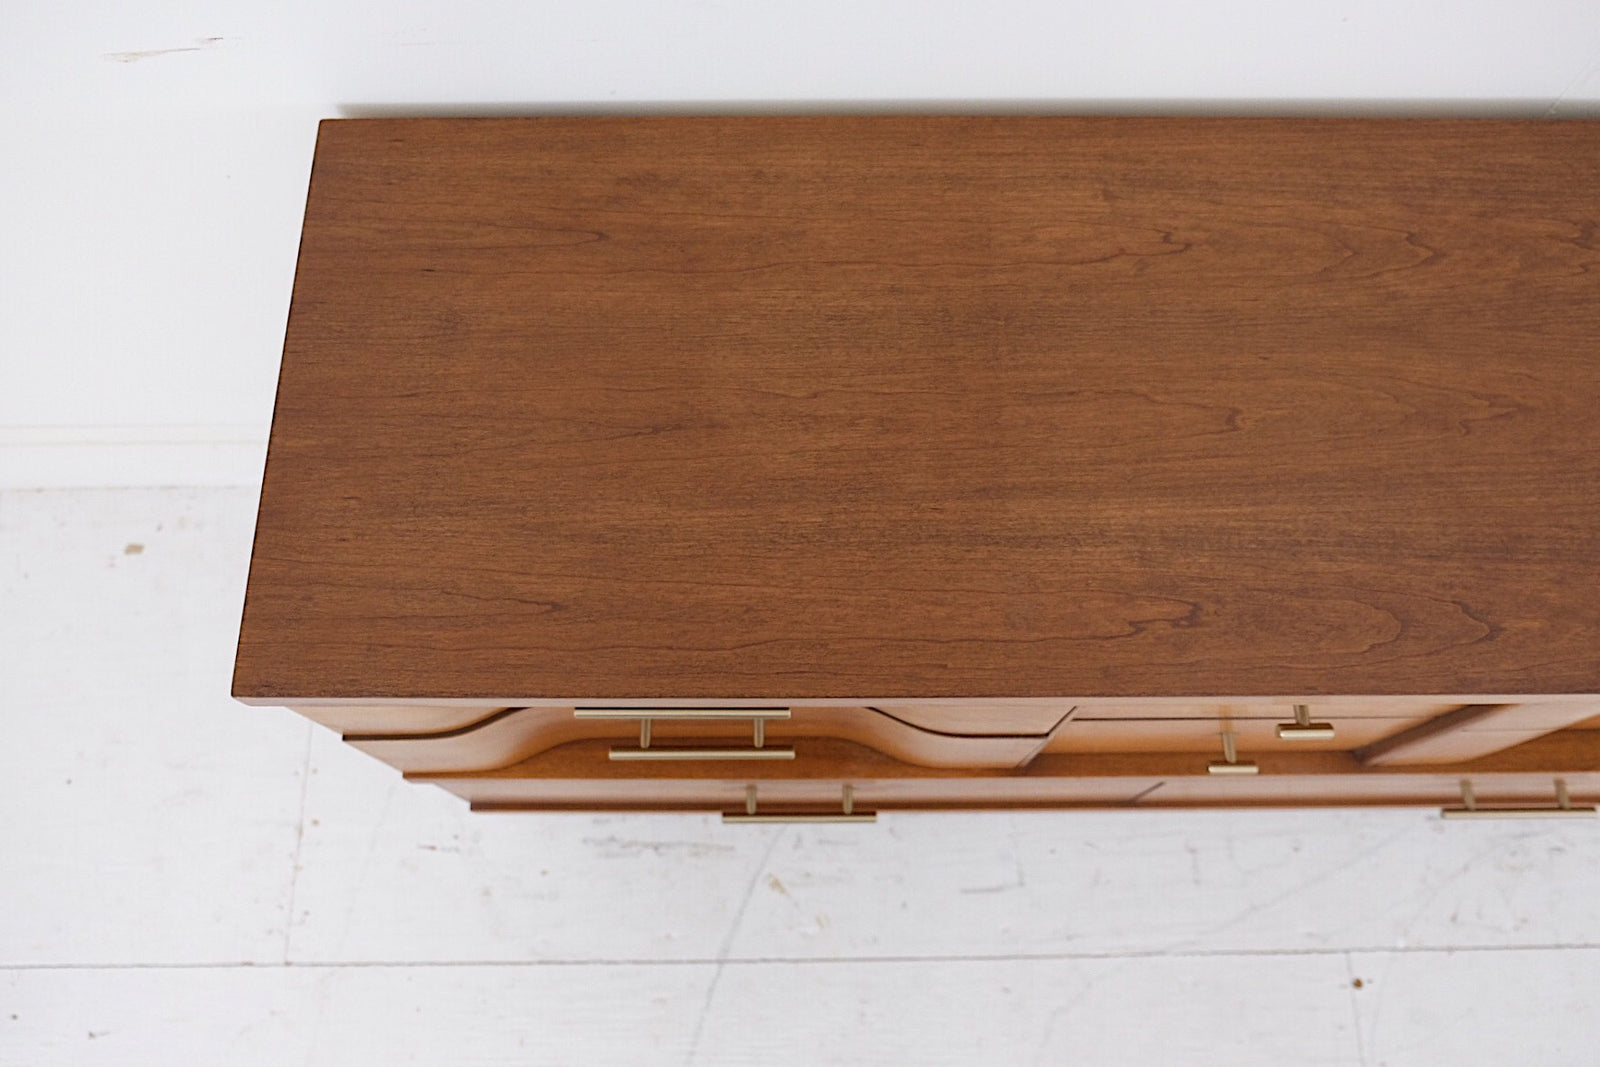 Johnson Carper Low Dresser Fashion Trend Eight Drawers New Cherry Veneer Top Brass New Modern Handles